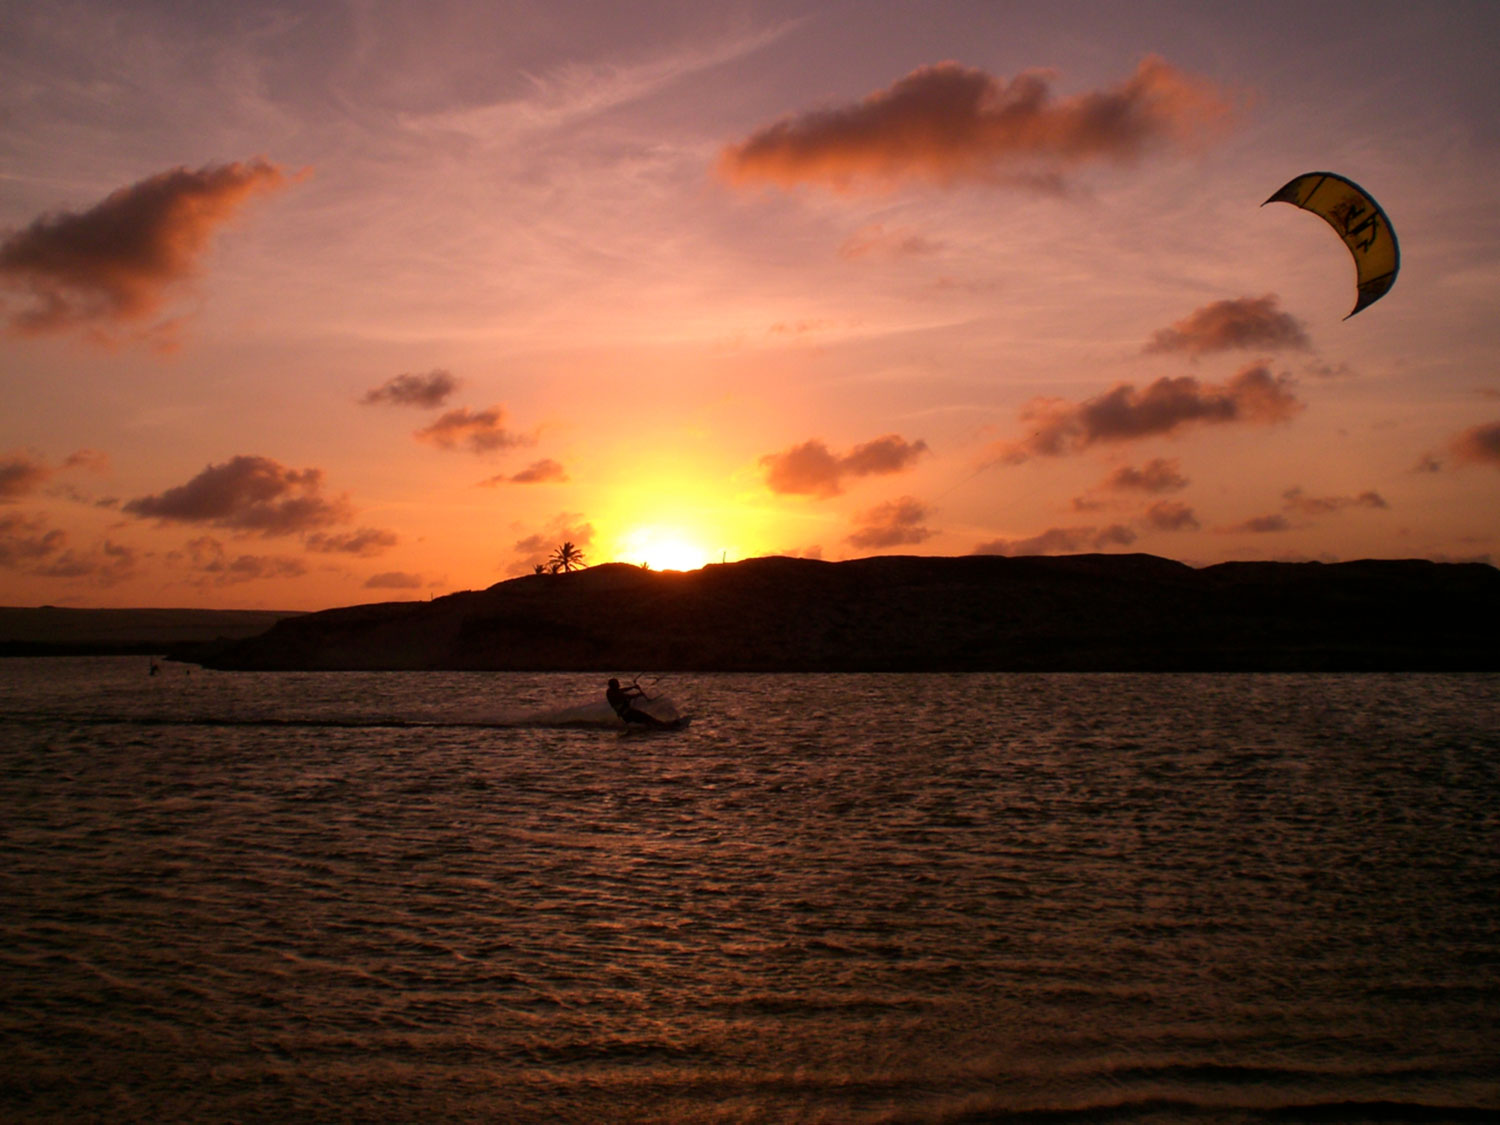 Kitesurfing-coaching-holiday-sunset-sessions-brazil-intermediate.jpg